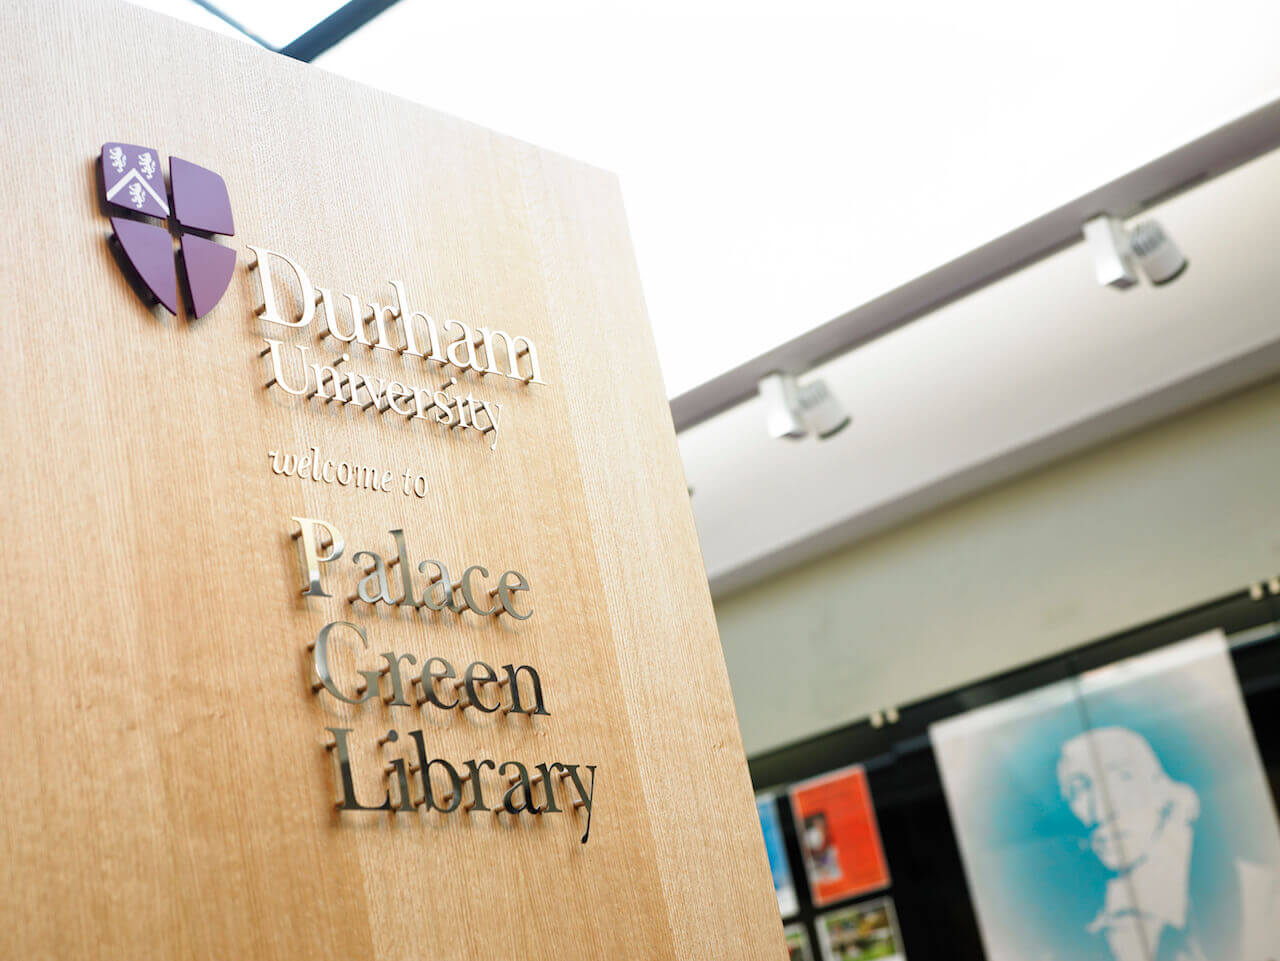 Design-led wayfinding and signage at Palace Green Library, based on Durham University's logo, corporate typefaces and colours